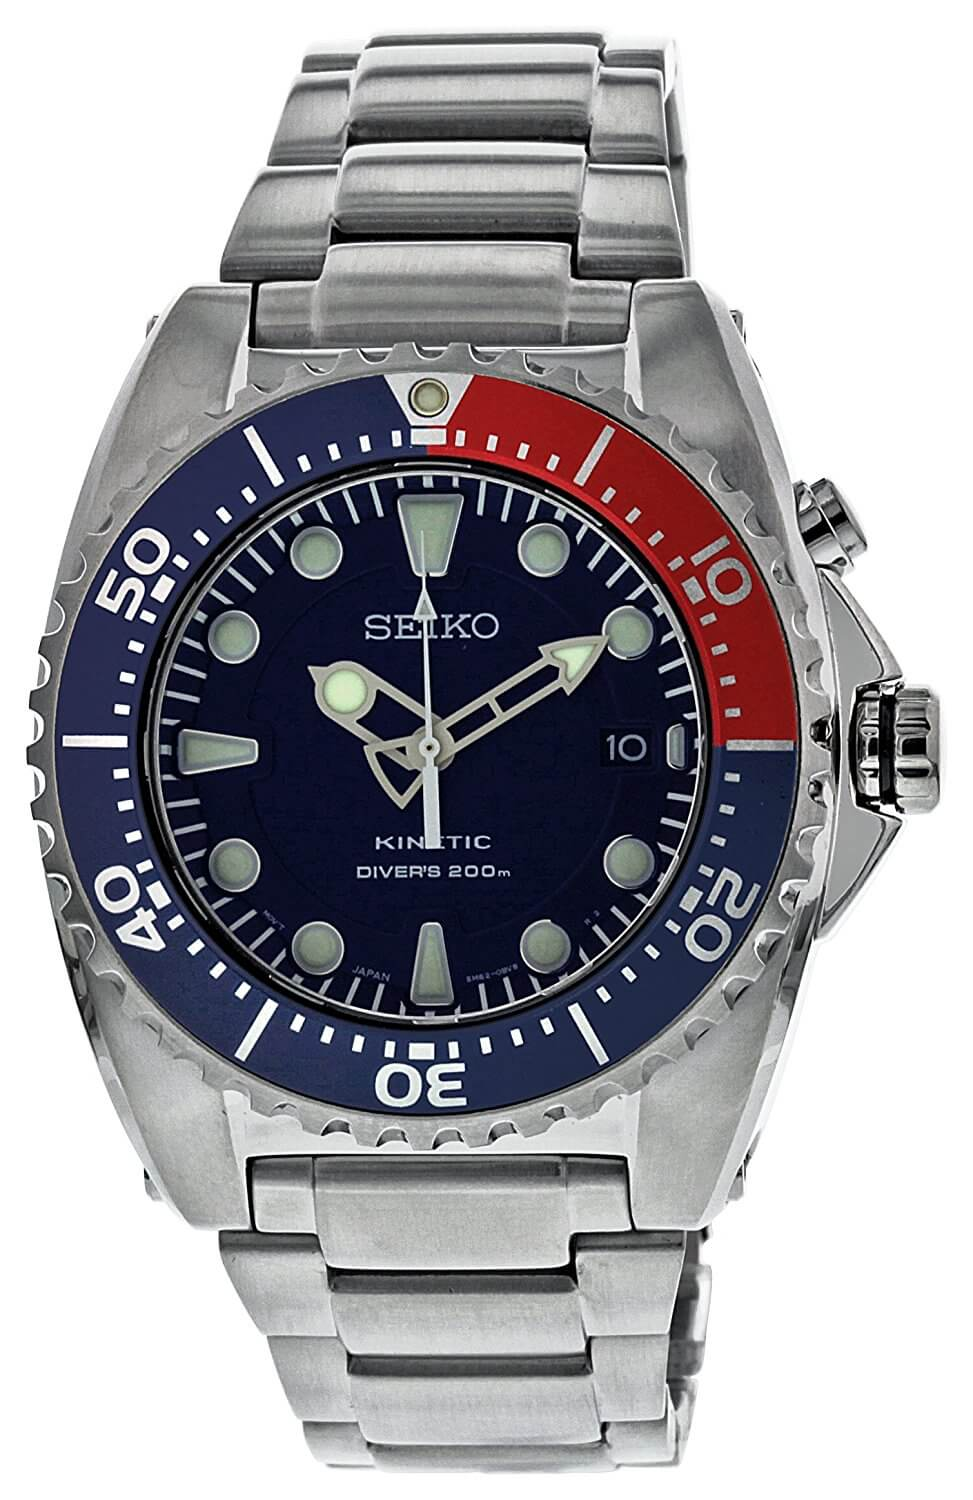 Seiko SKA369 Pepsi review